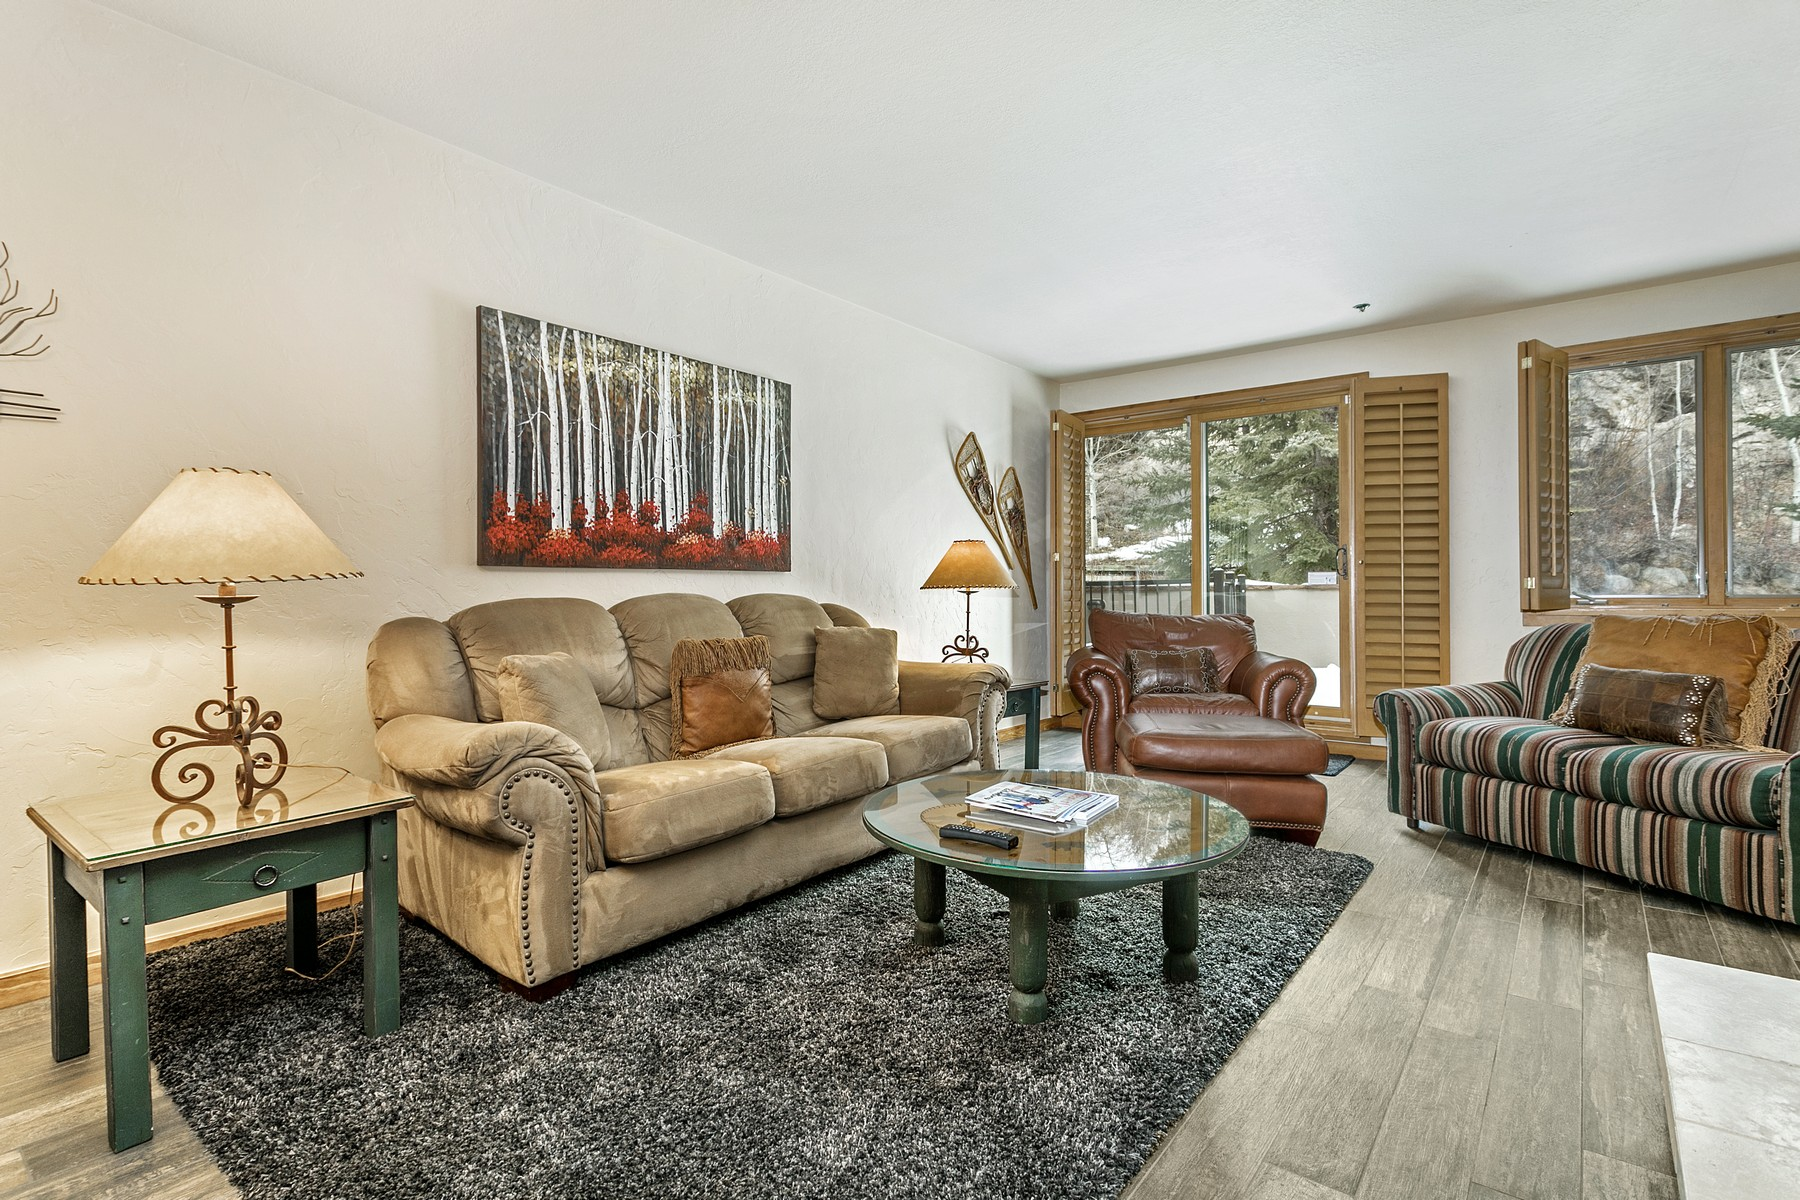 Additional photo for property listing at Turn-Key Beaver Creek Condo Overlooking Pool Deck 311 Offerson Road 234 Beaver Creek, Colorado 81620 United States